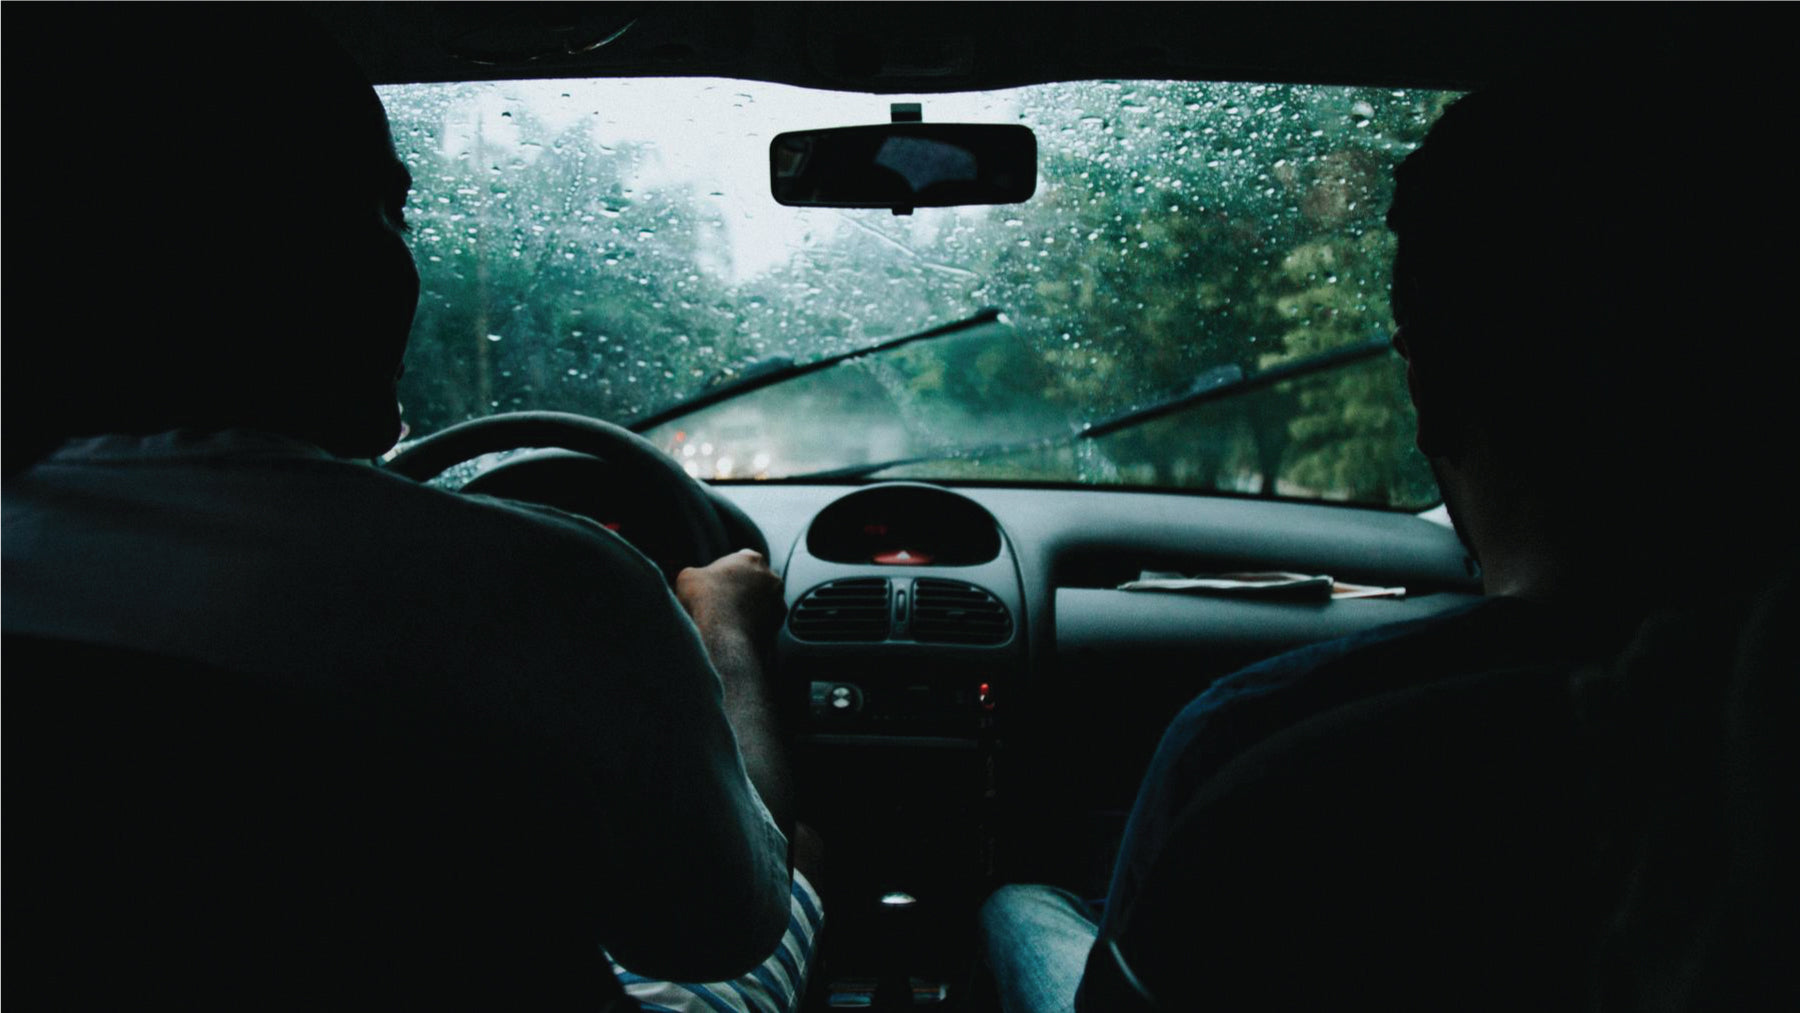 Ways to drive safe in rainy weather